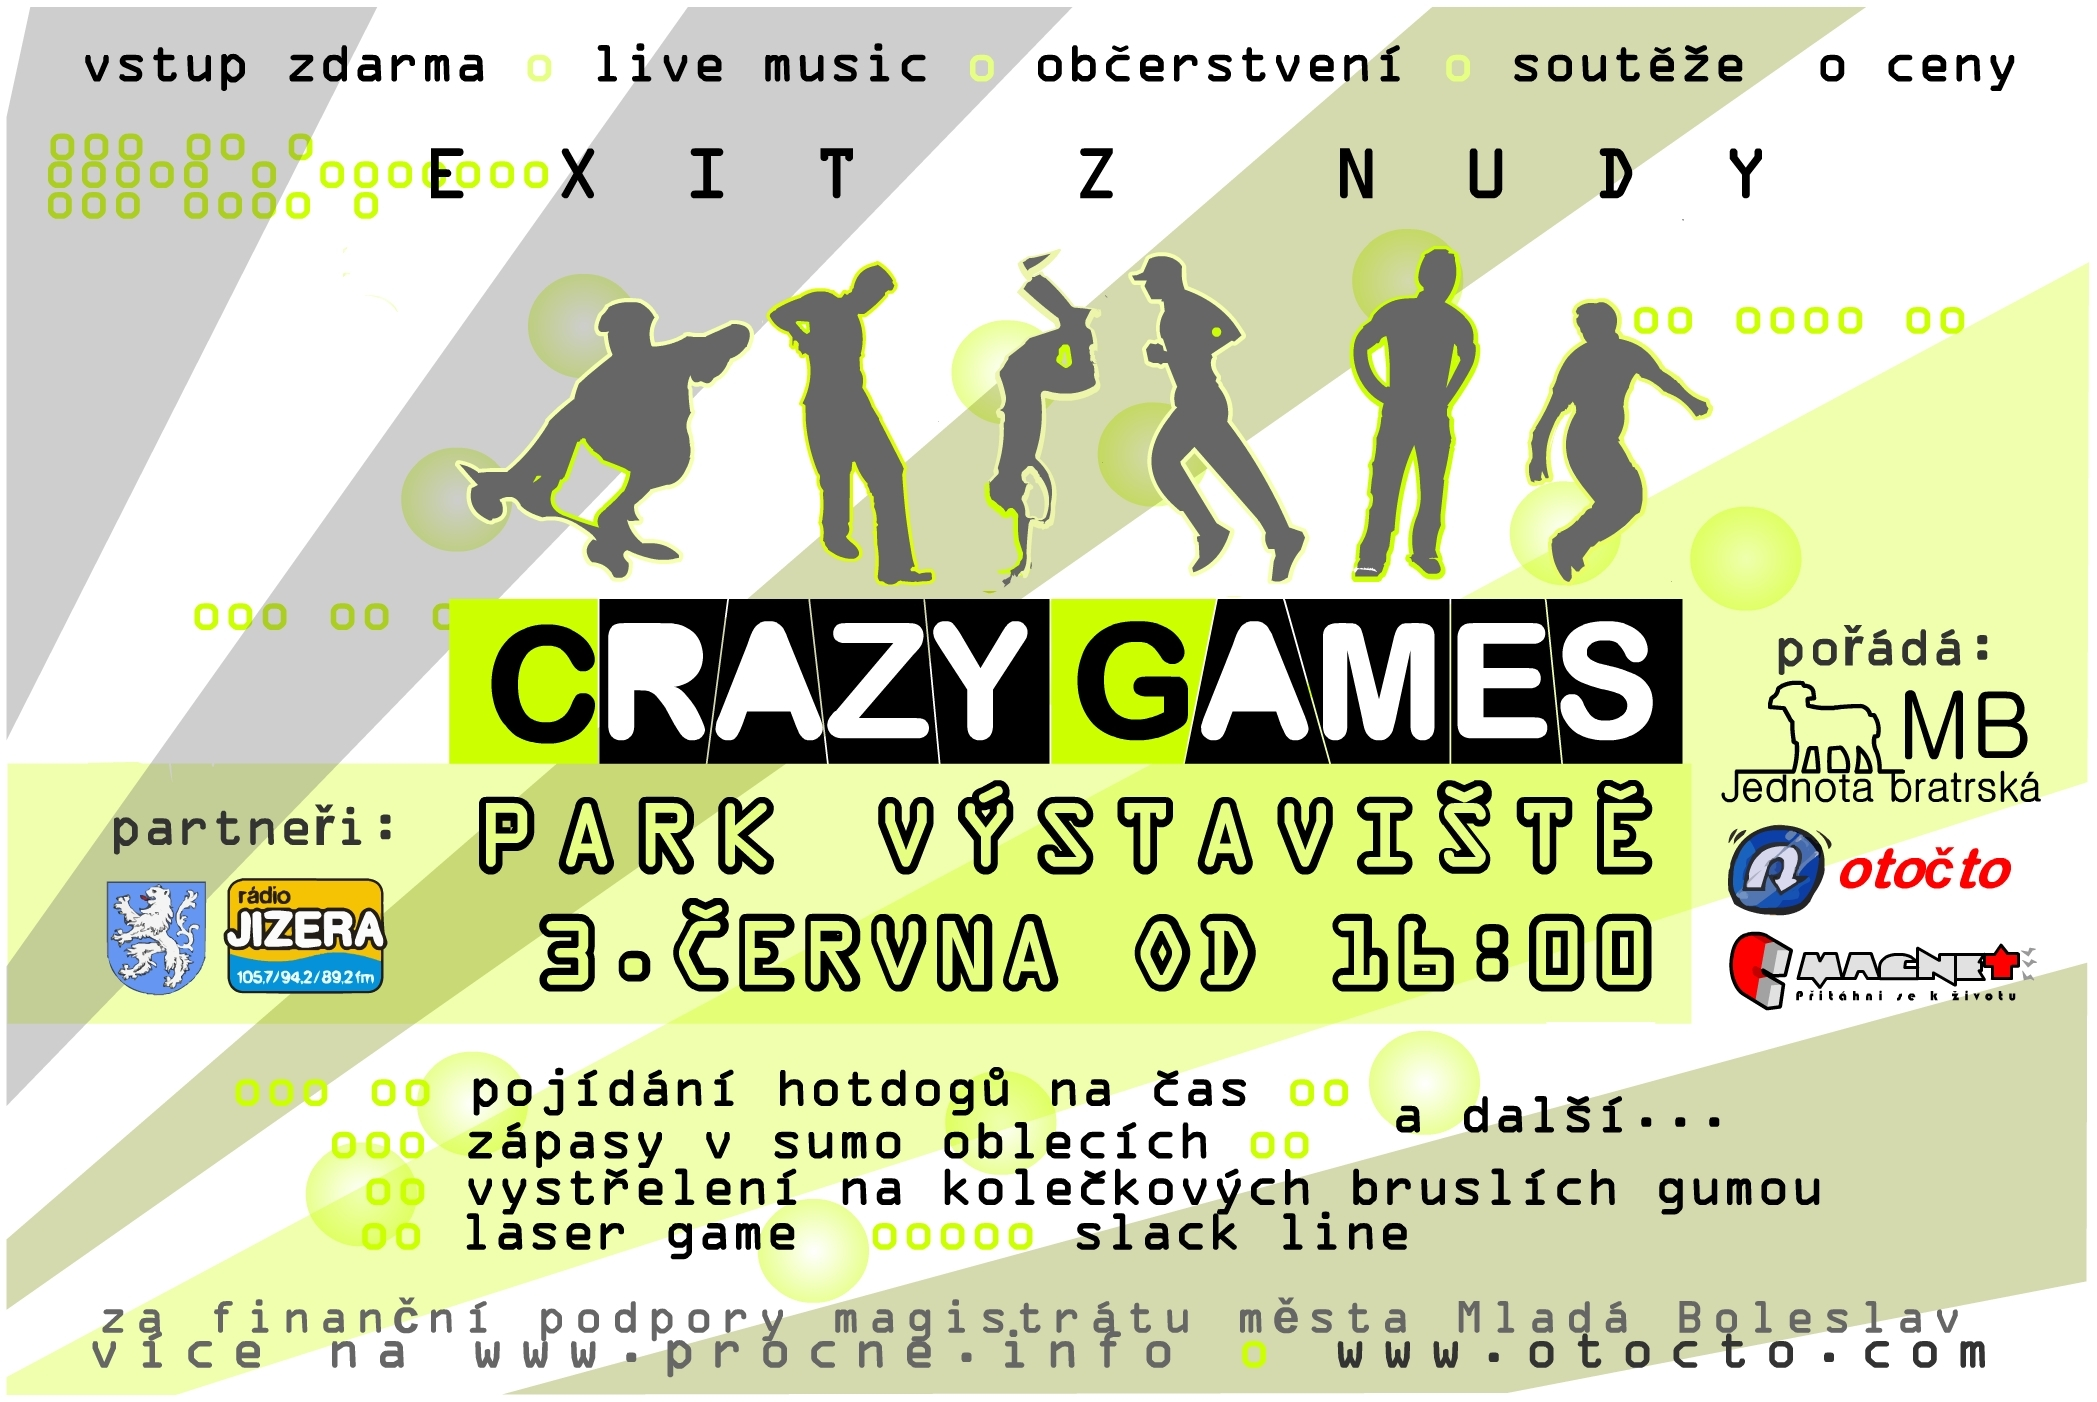 Crazy games pozvanka.jpg